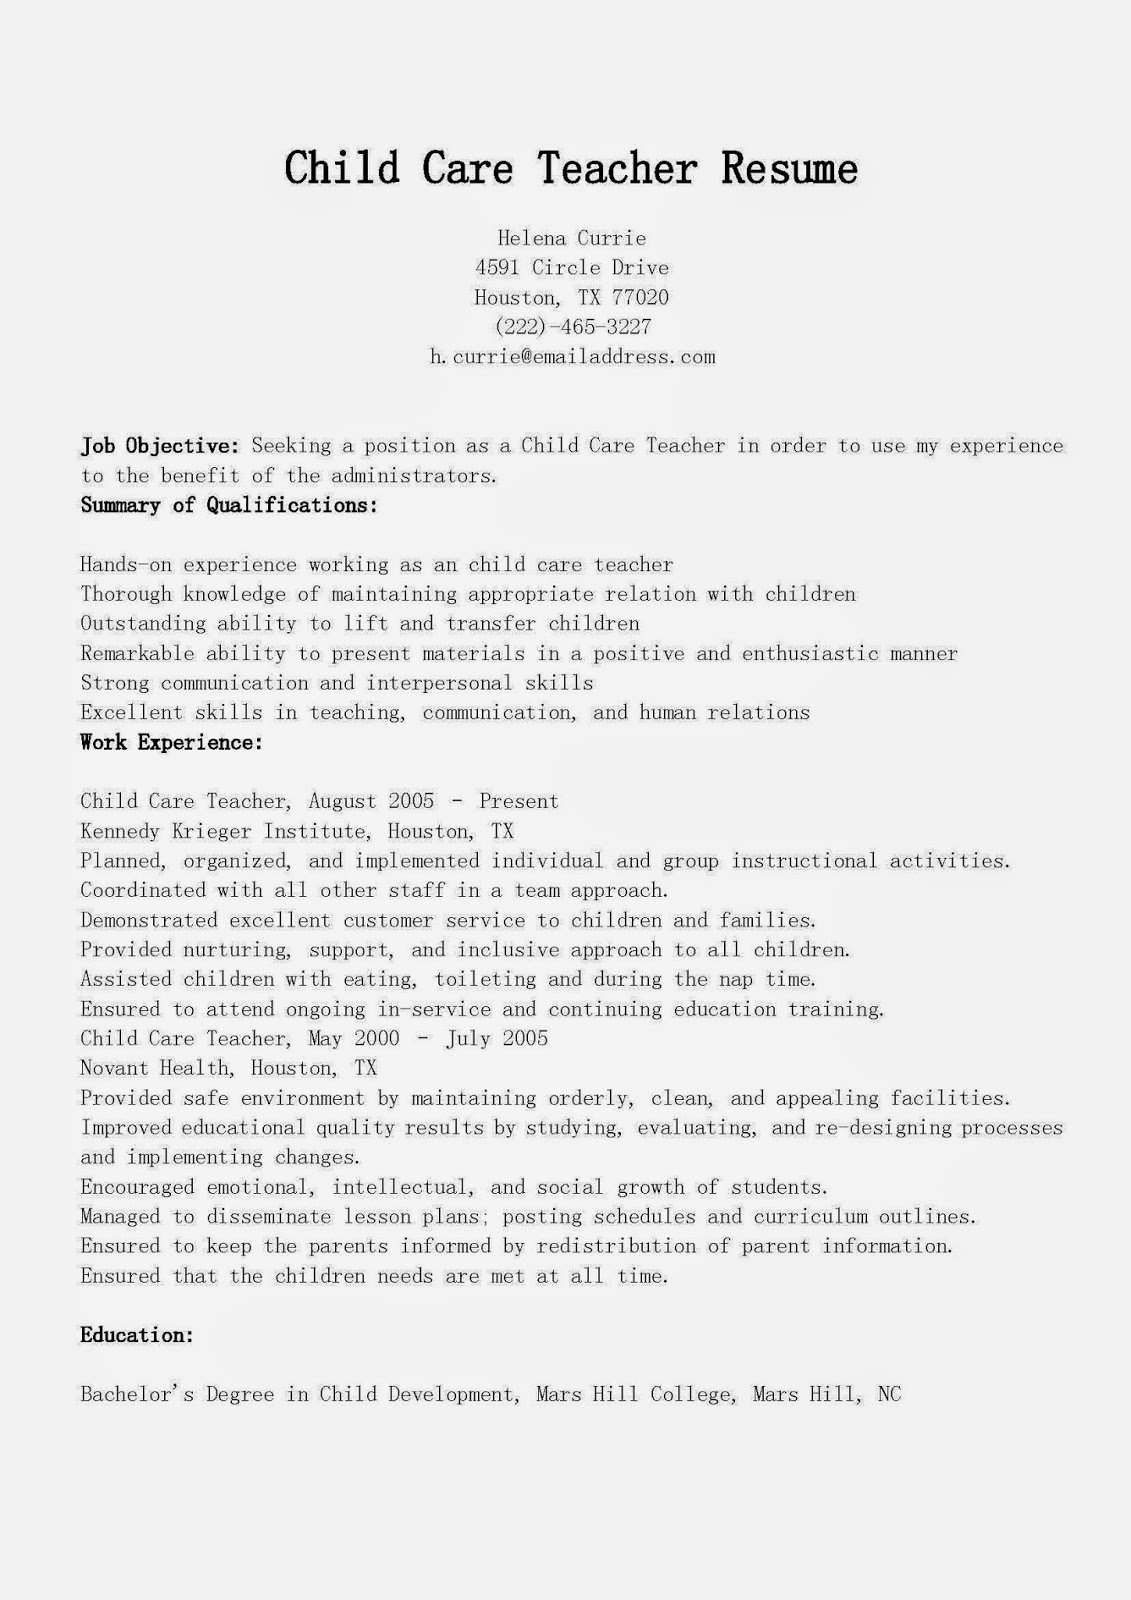 Child Care Resume Template Luxury Resume Samples Child Care Teacher Resume Sample